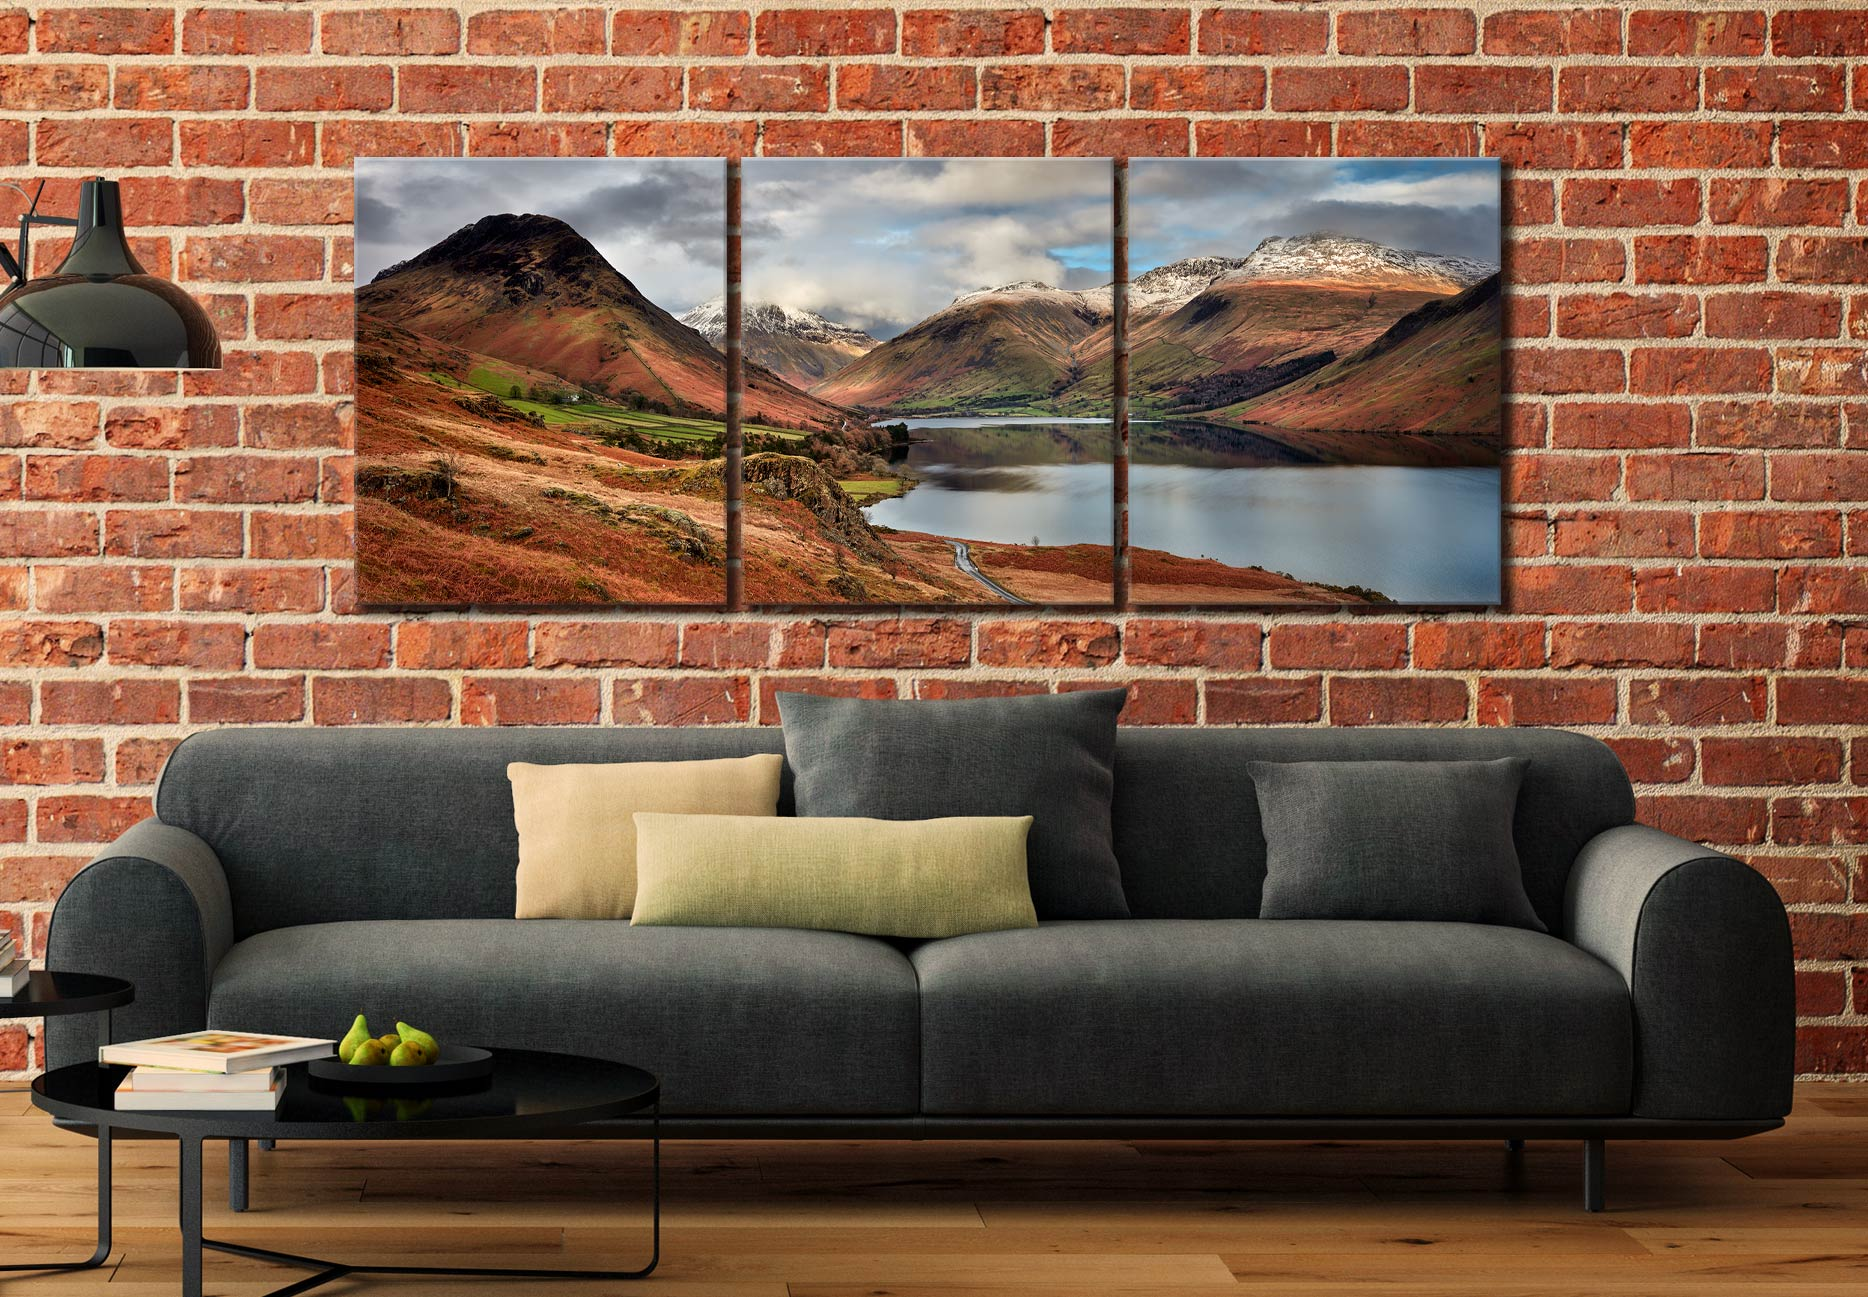 Snow on Mountains at Wast Water - 3 Panel Canvas on Wall